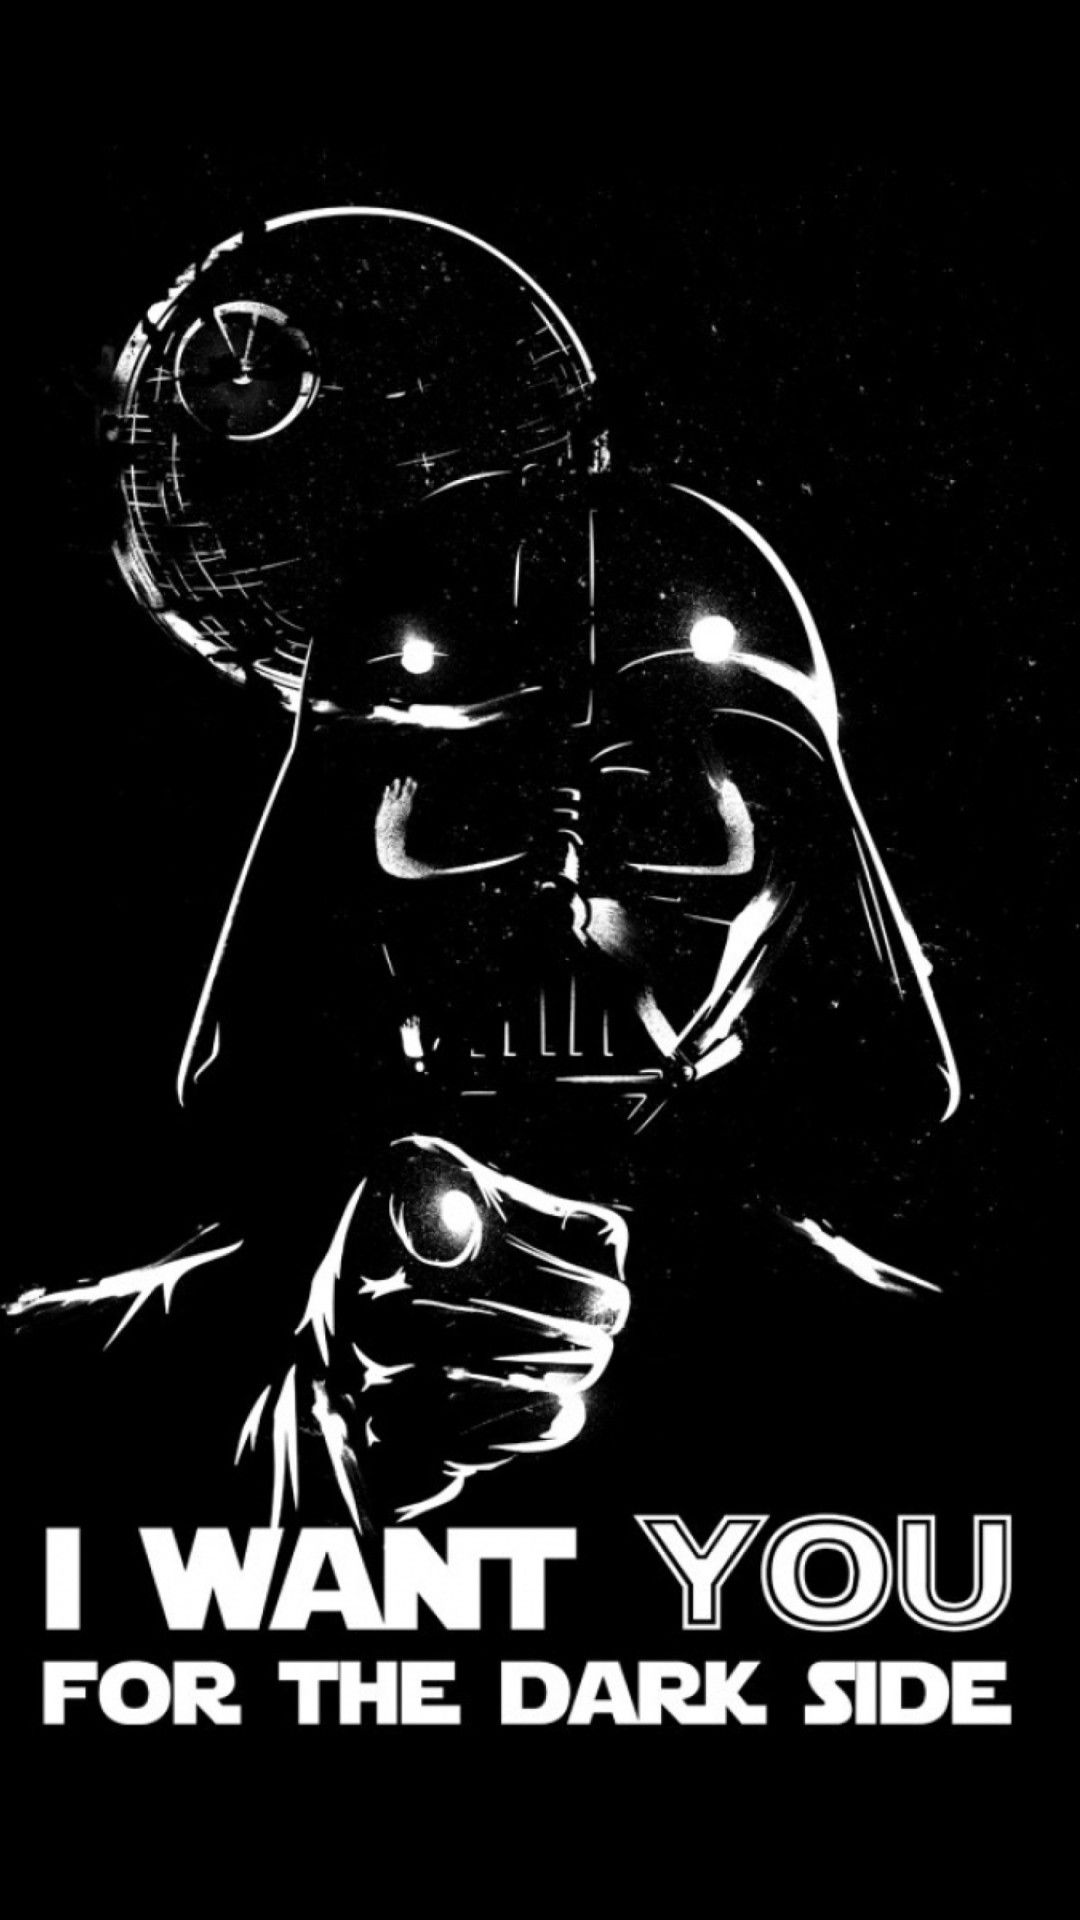 125 Star Wars Christmas Android Iphone Desktop Hd Backgrounds Wallpapers 1080p 4k 1080x1920 2020